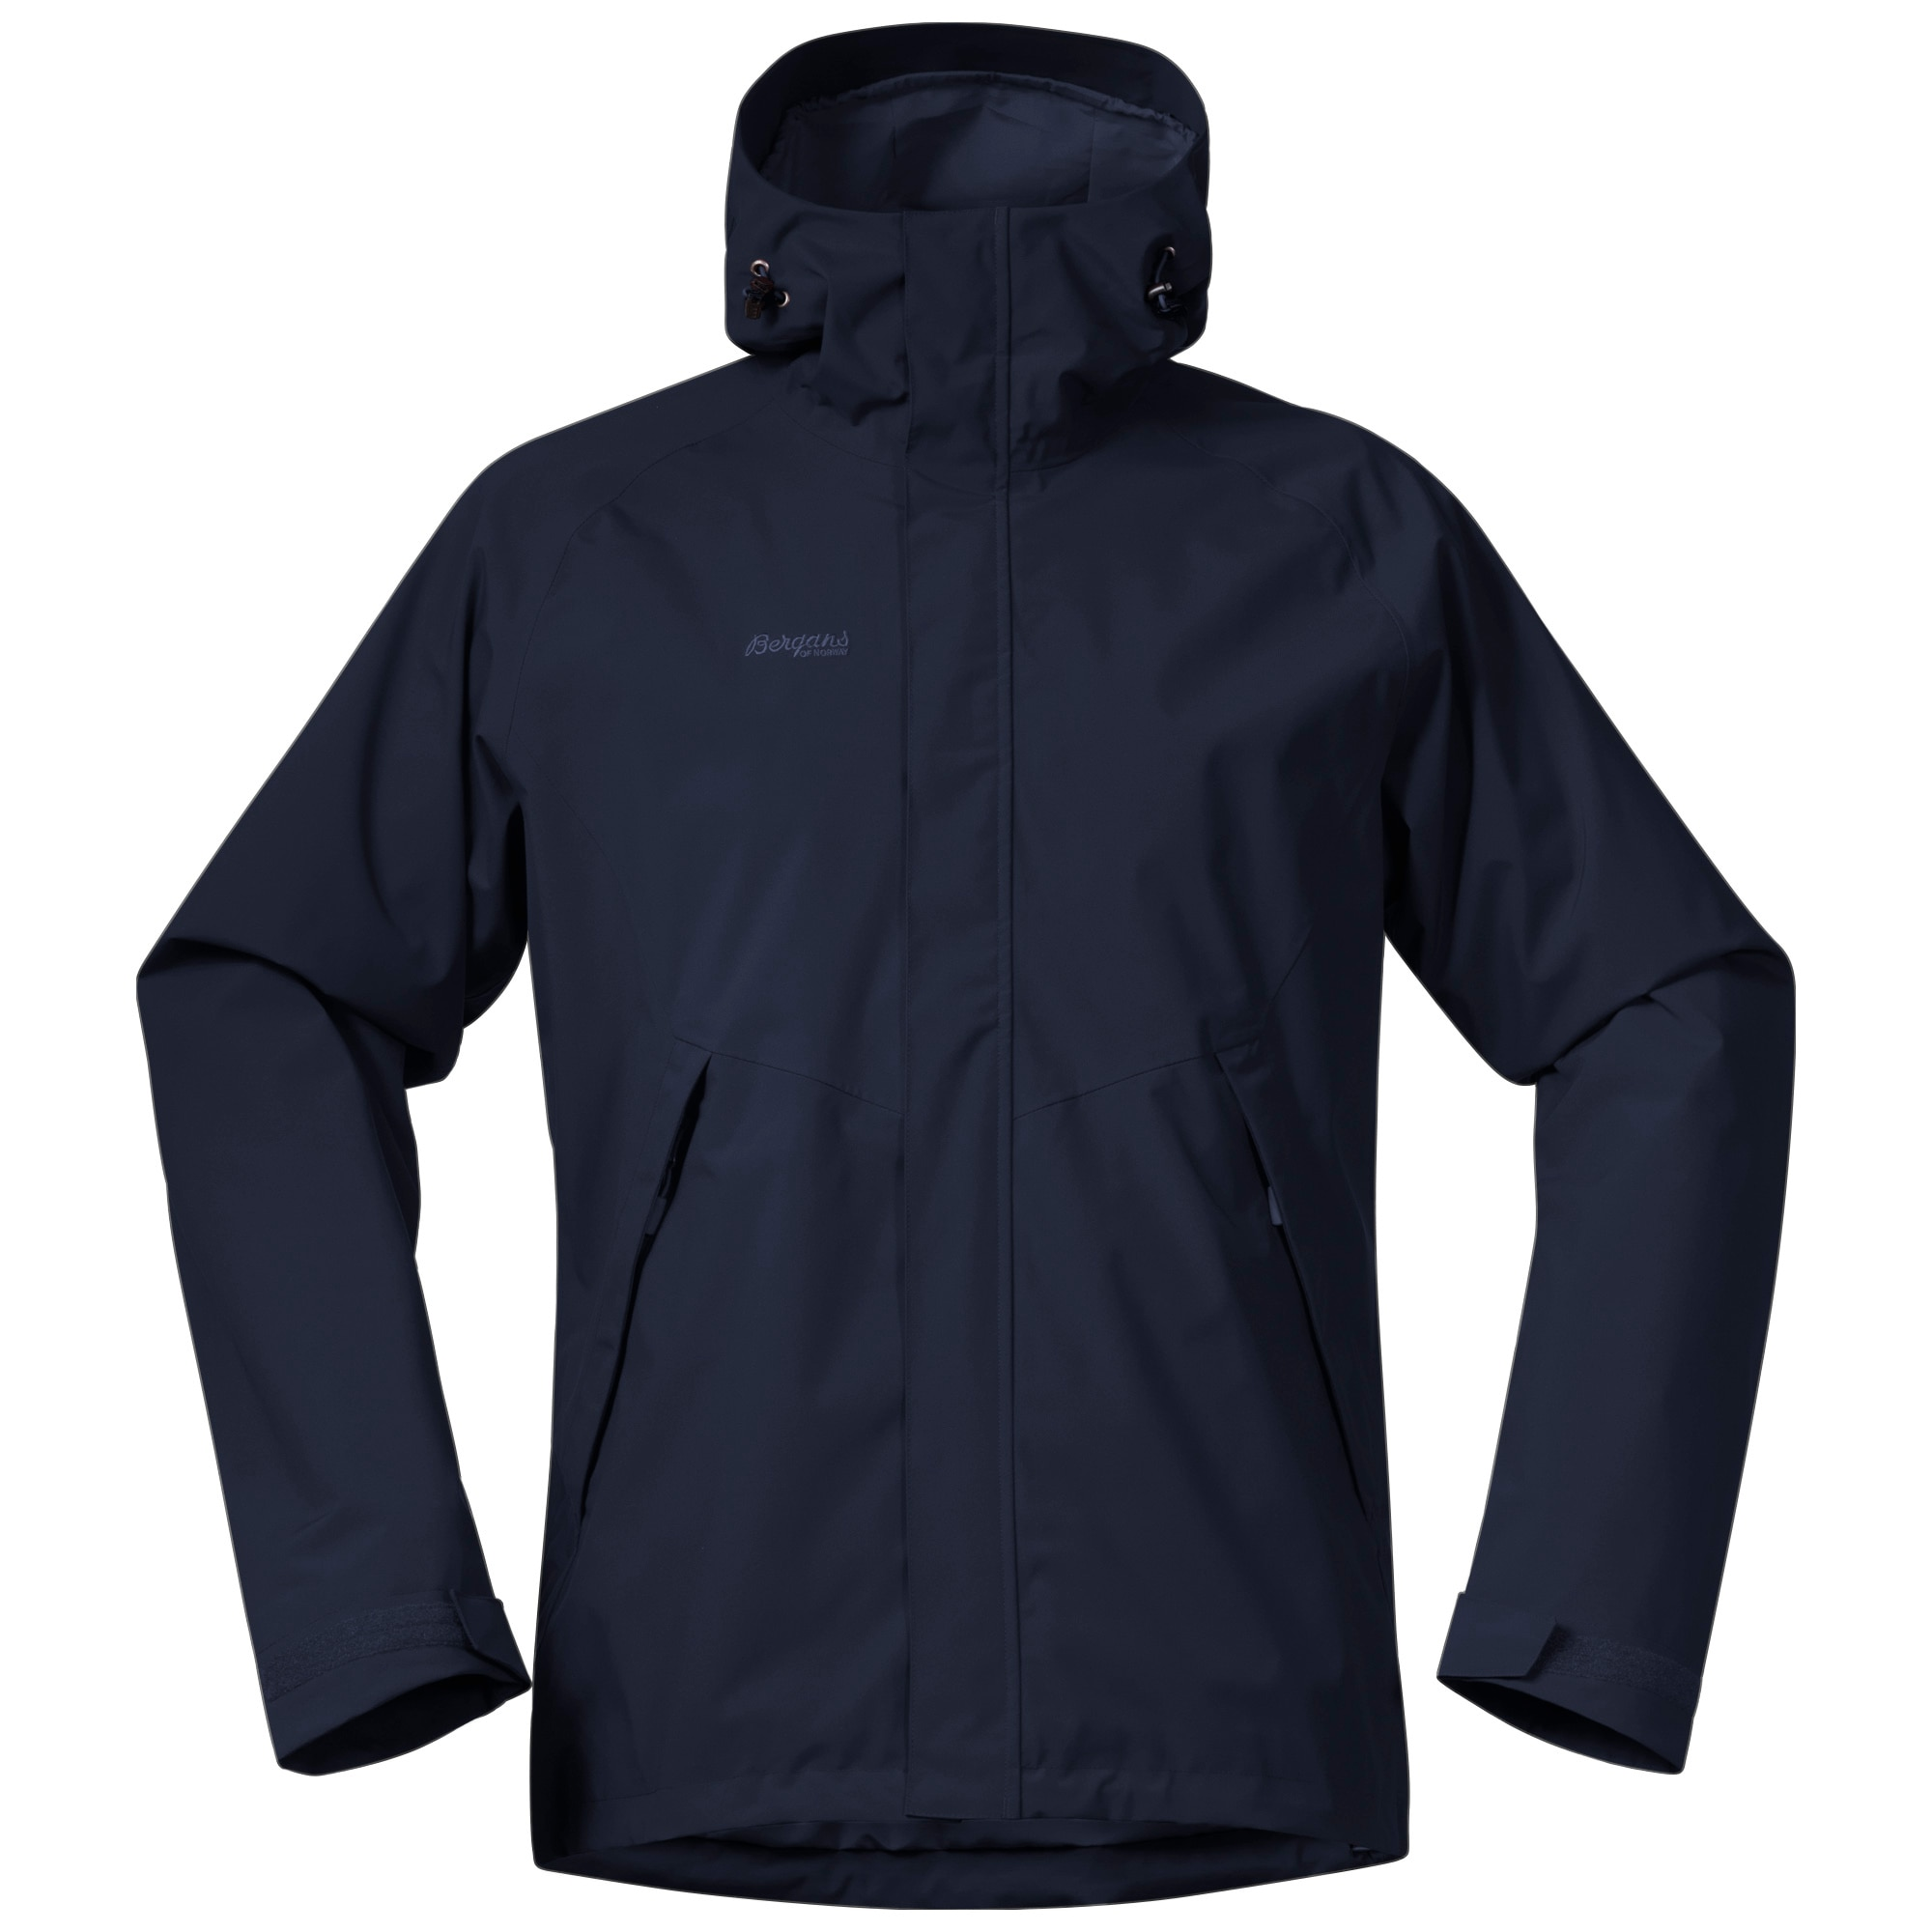 Ramberg 2L Insulated Jacket